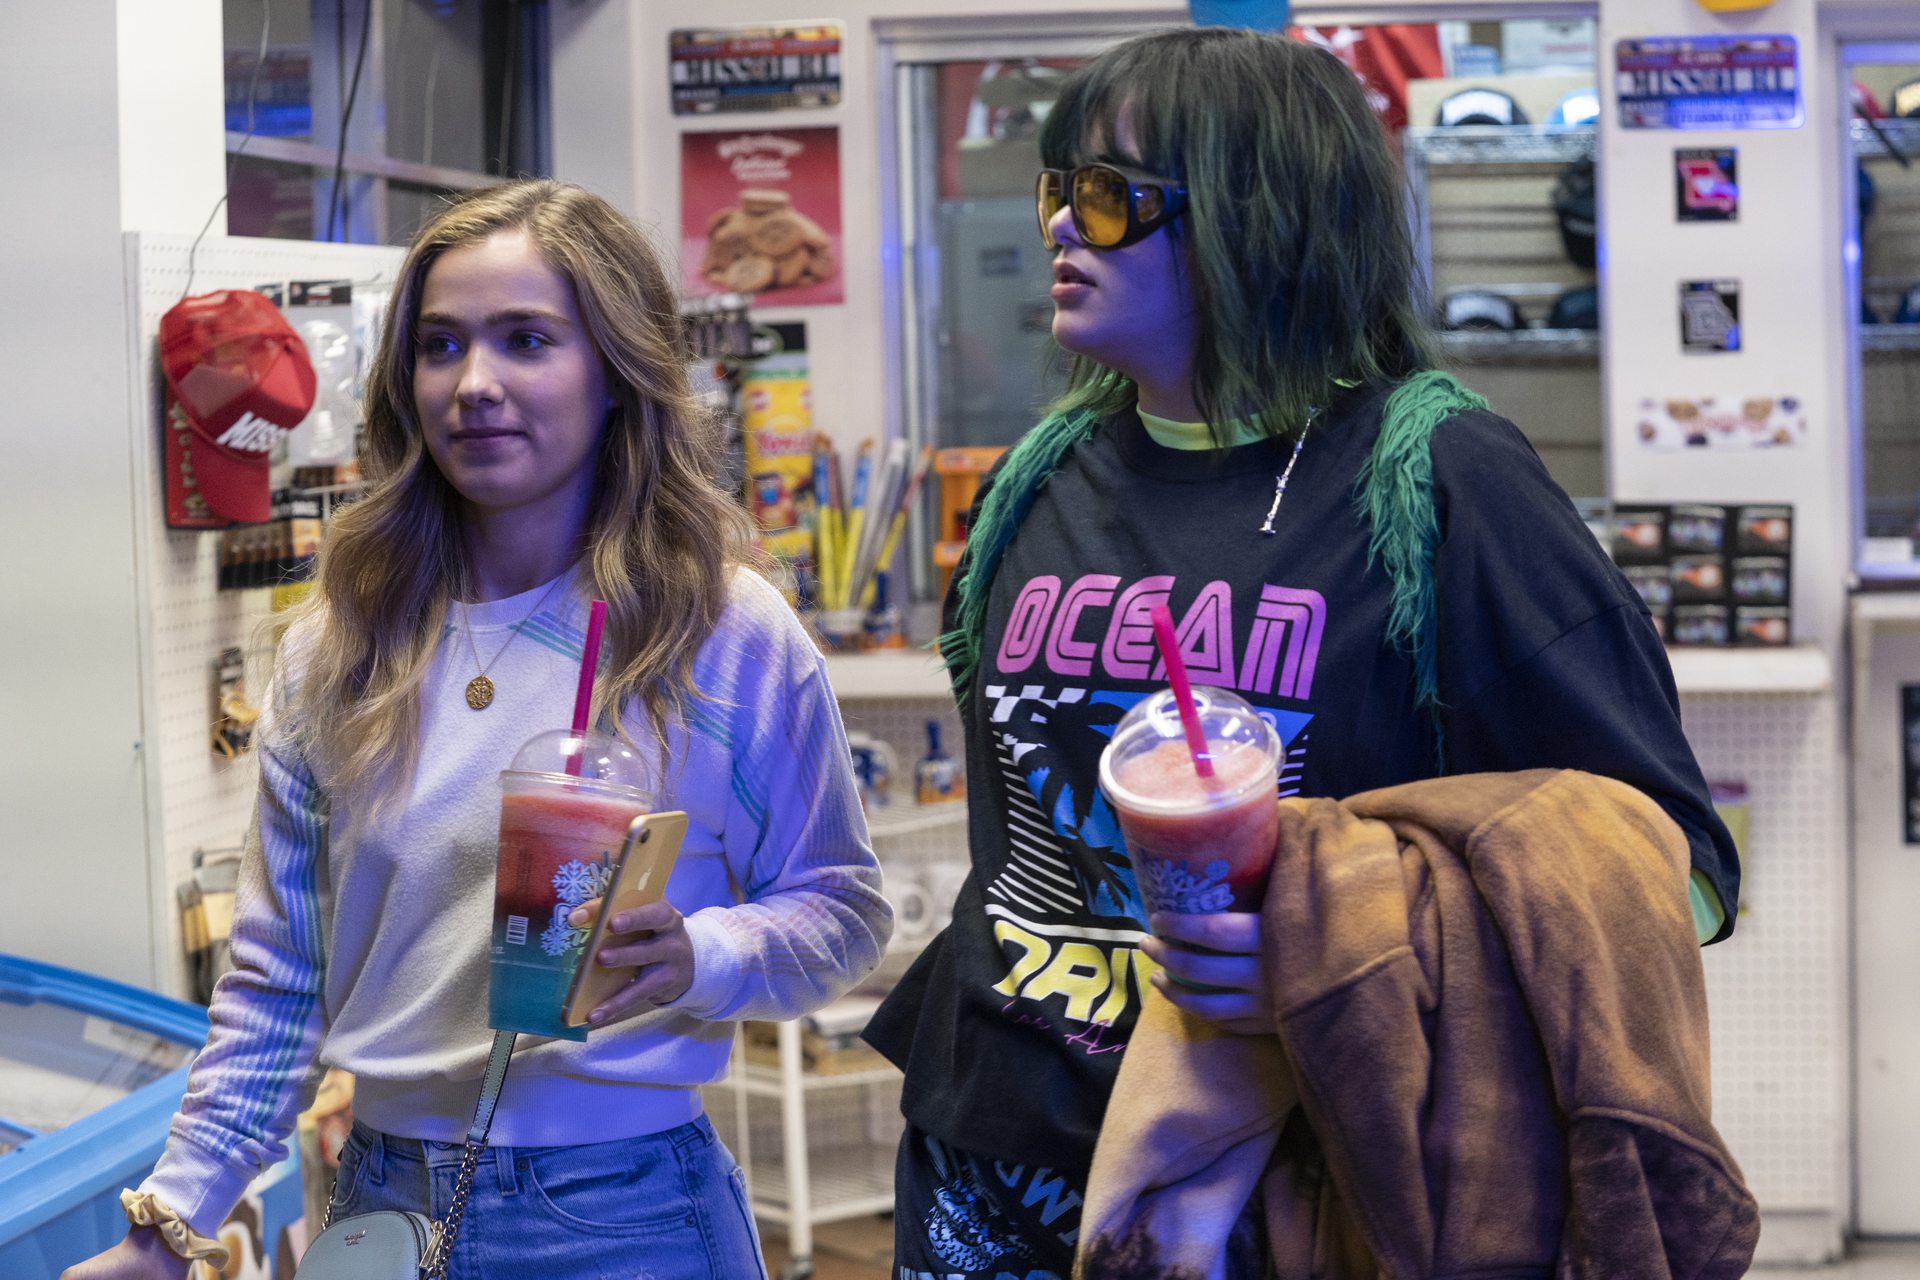 Haley Lu Richardson and Barbie Ferreira journey across state lines for an abortion in 'Unpregnant'